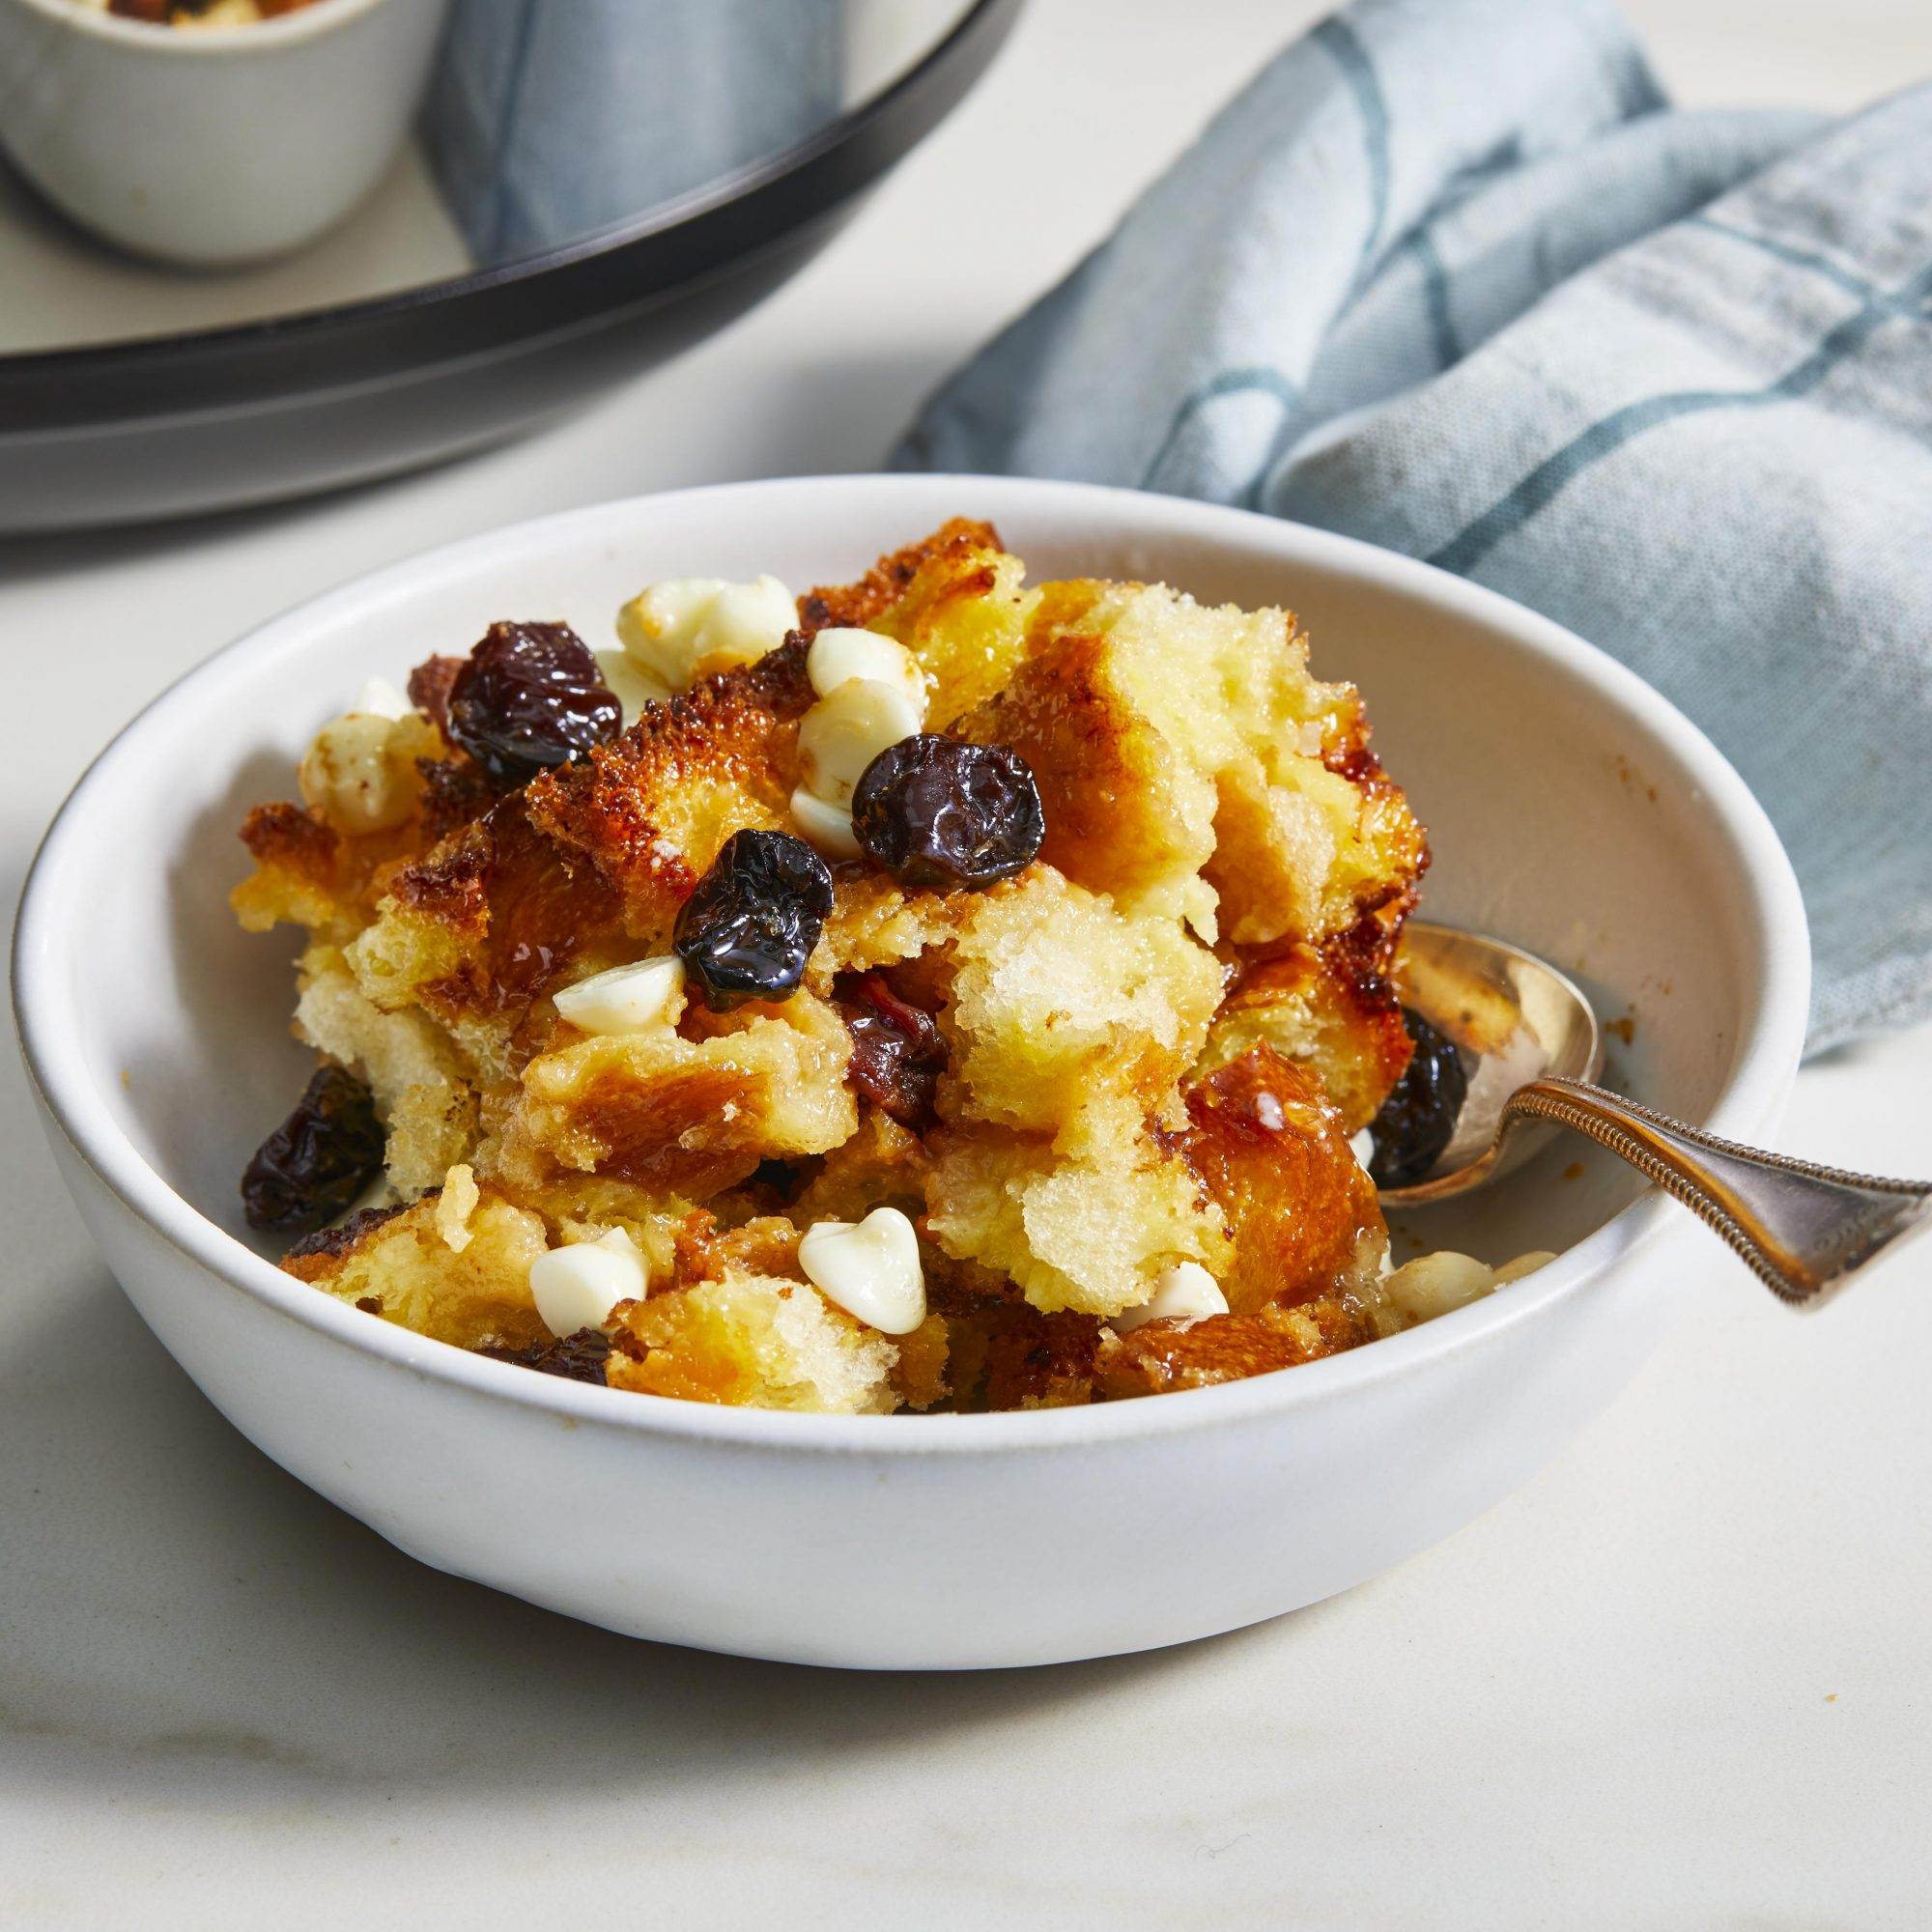 A bowl of bread pudding with a slow cooker in the background.